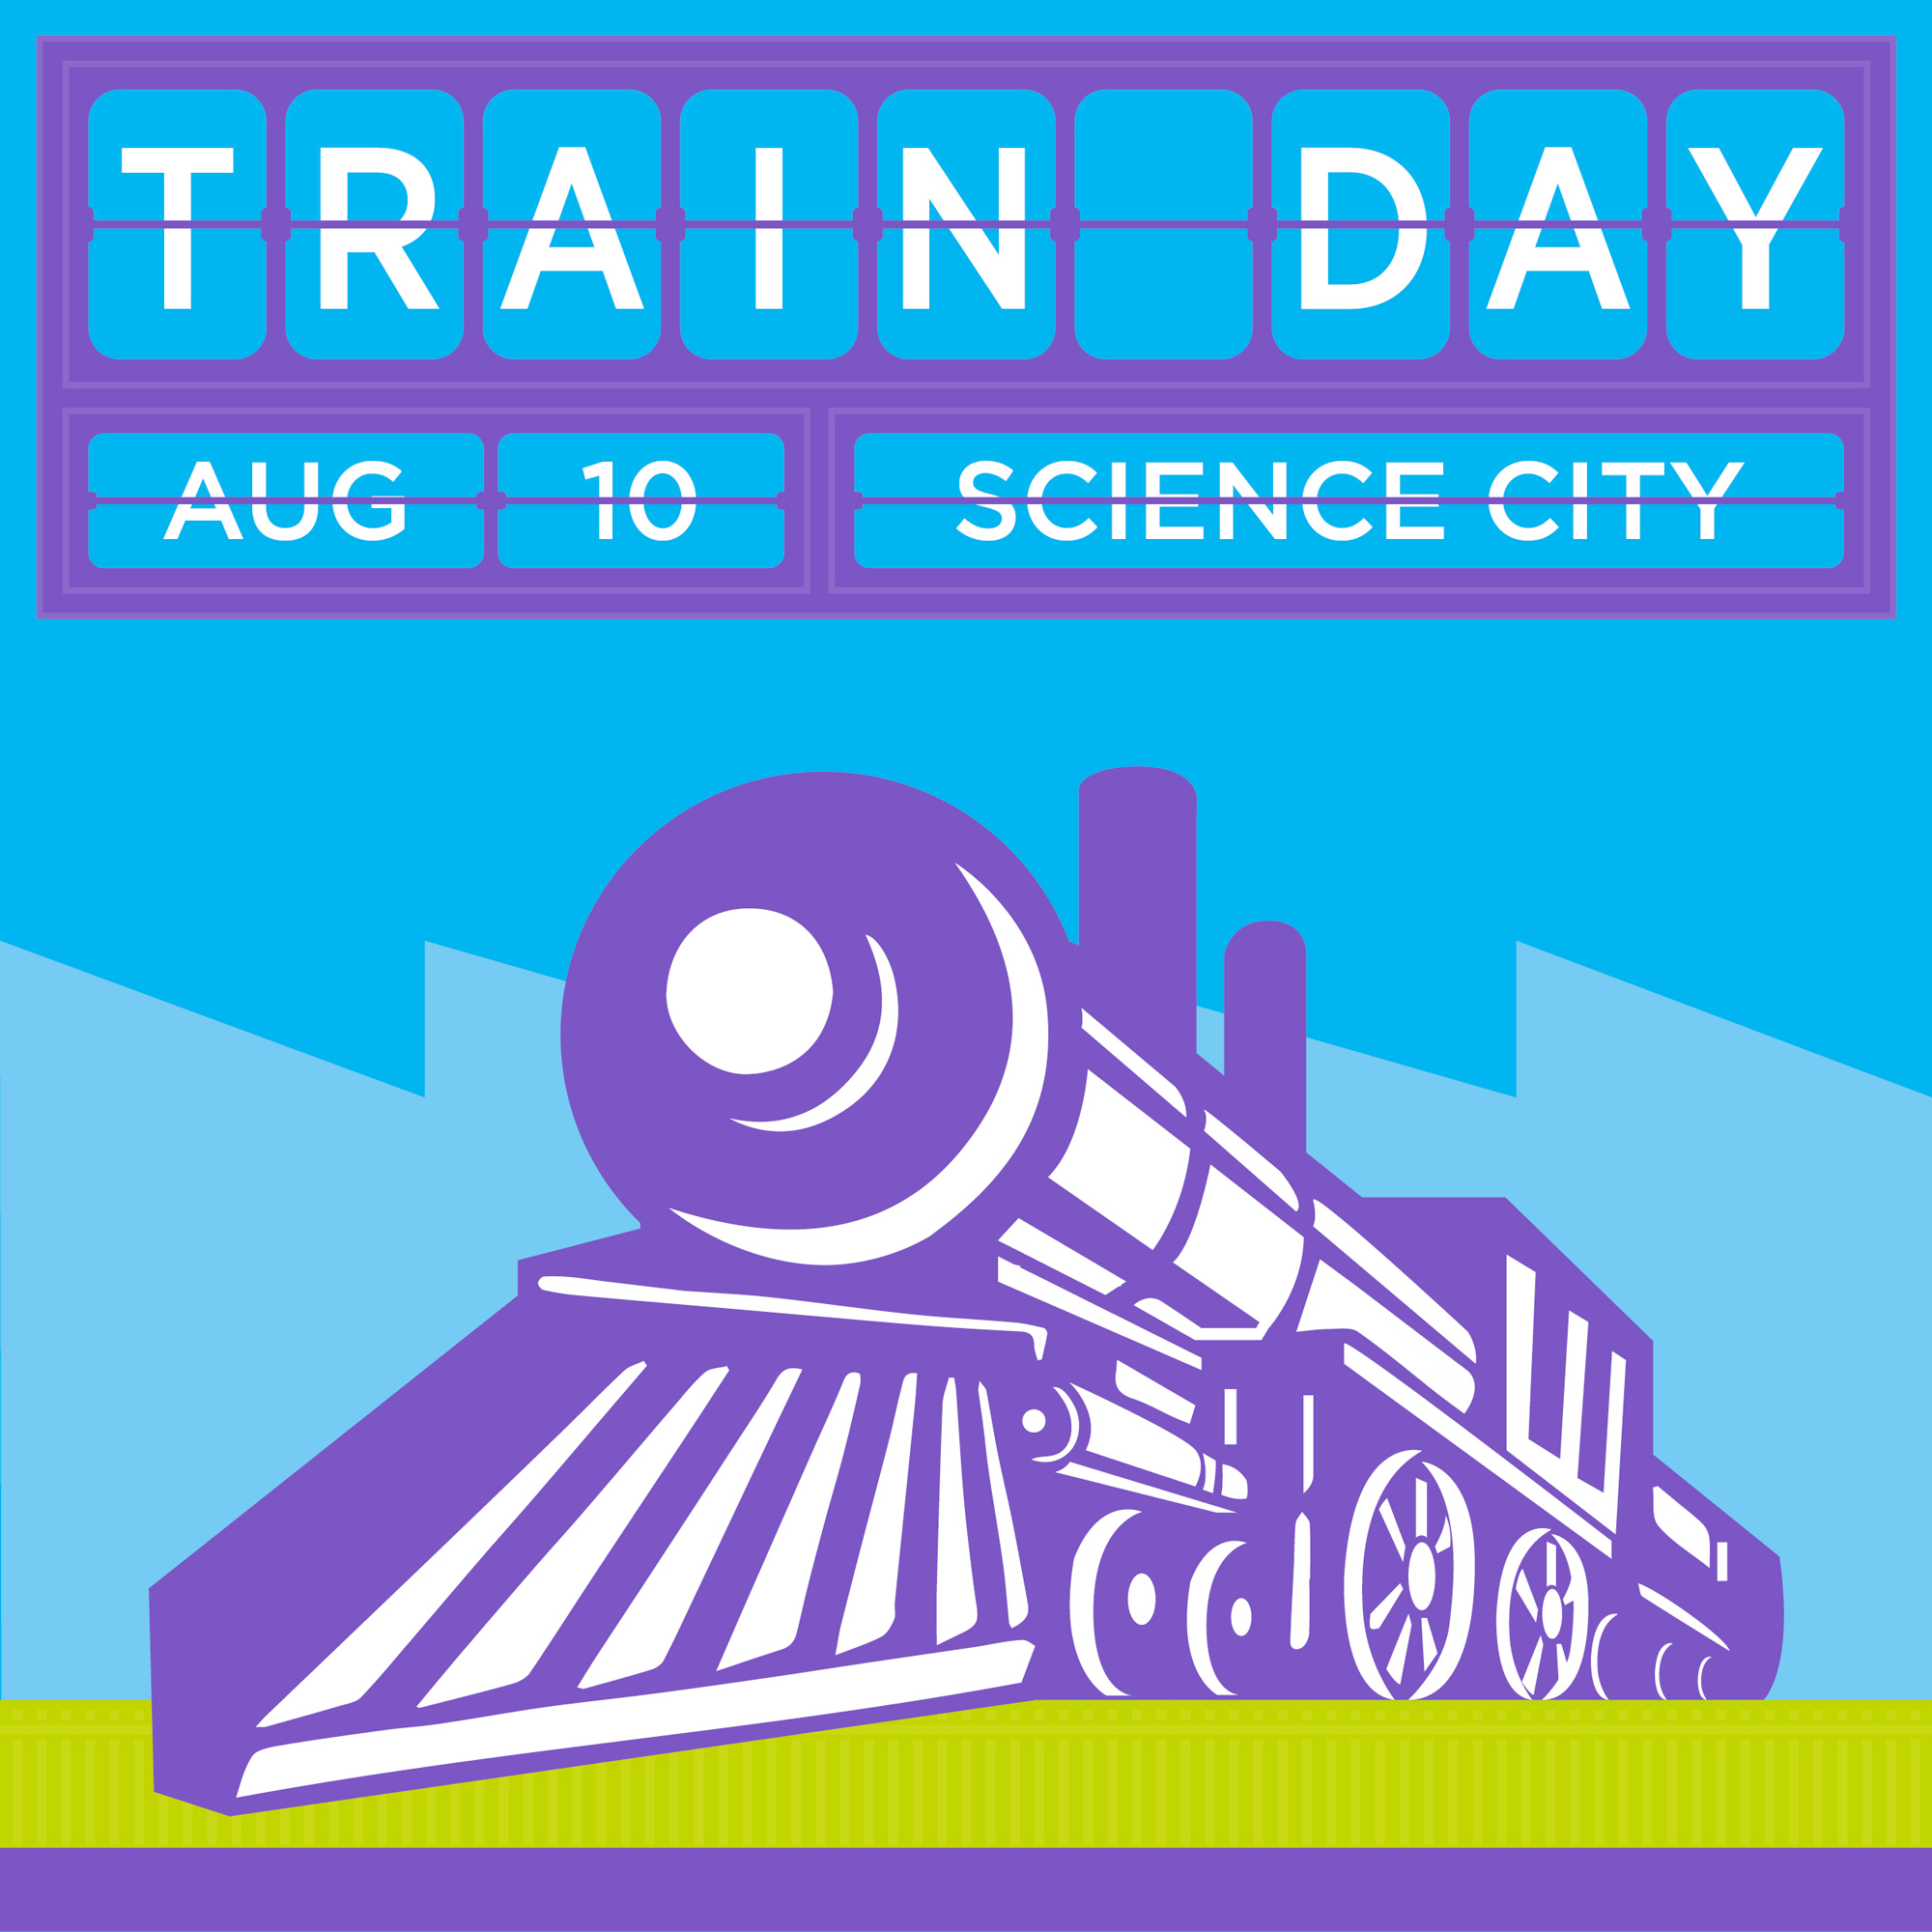 Train Day in Science City